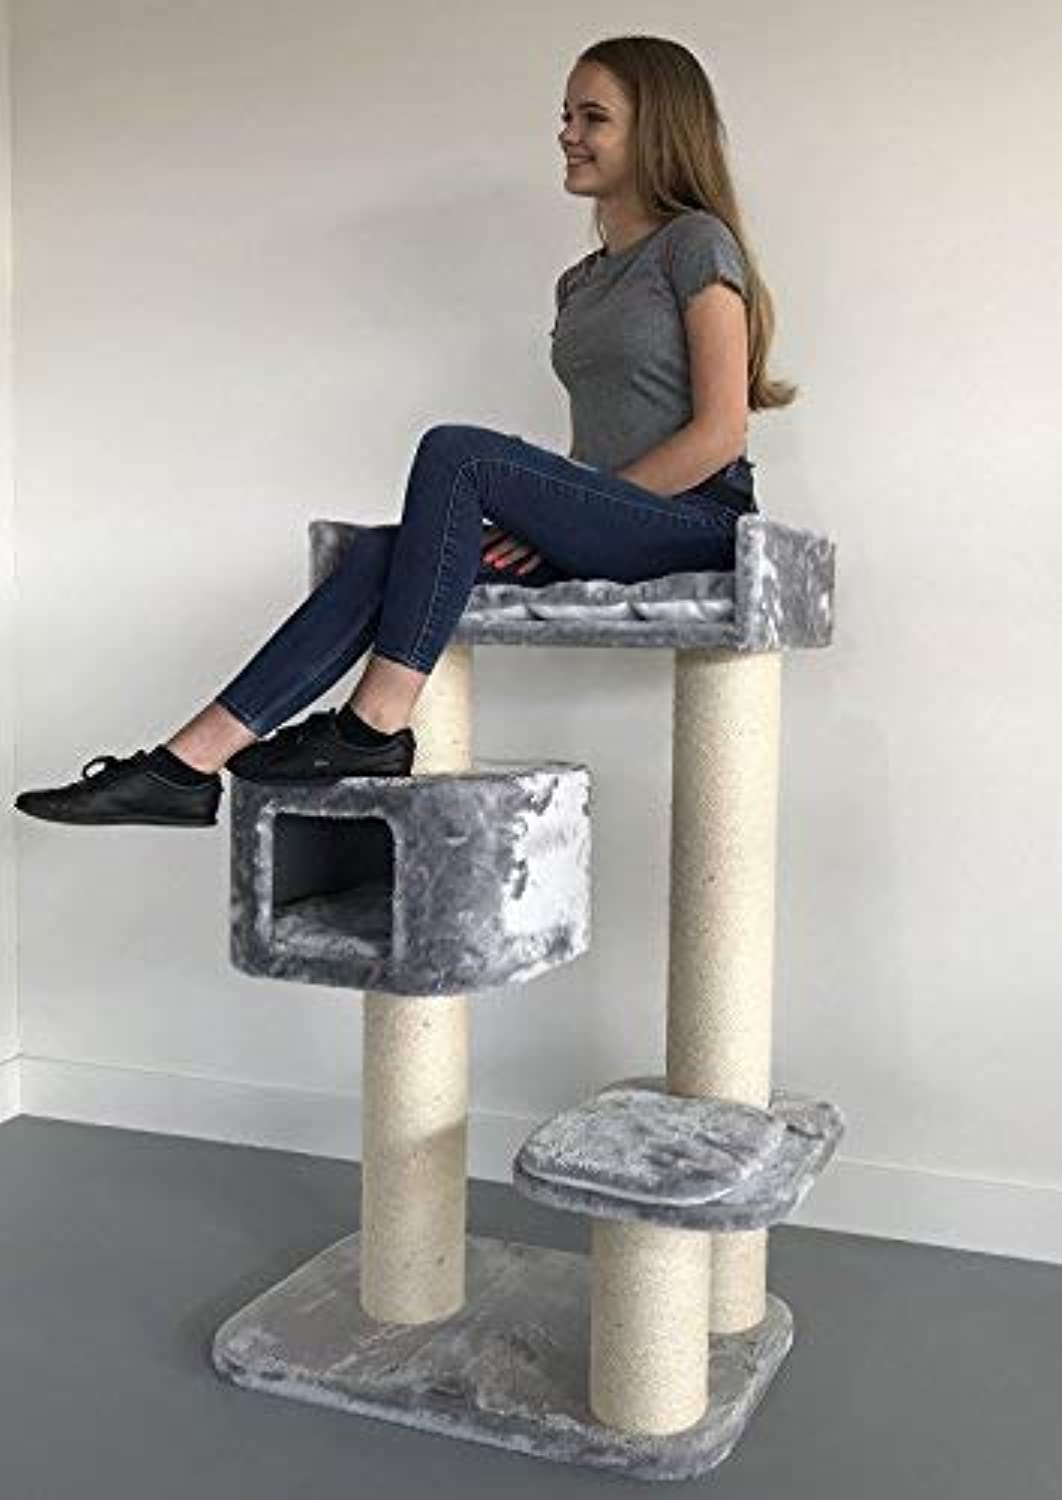 Cat tree for large cats Devon Rex Light Grey XXL extra big breed trees scratch post and adult towers Furniture scratcher activity centre